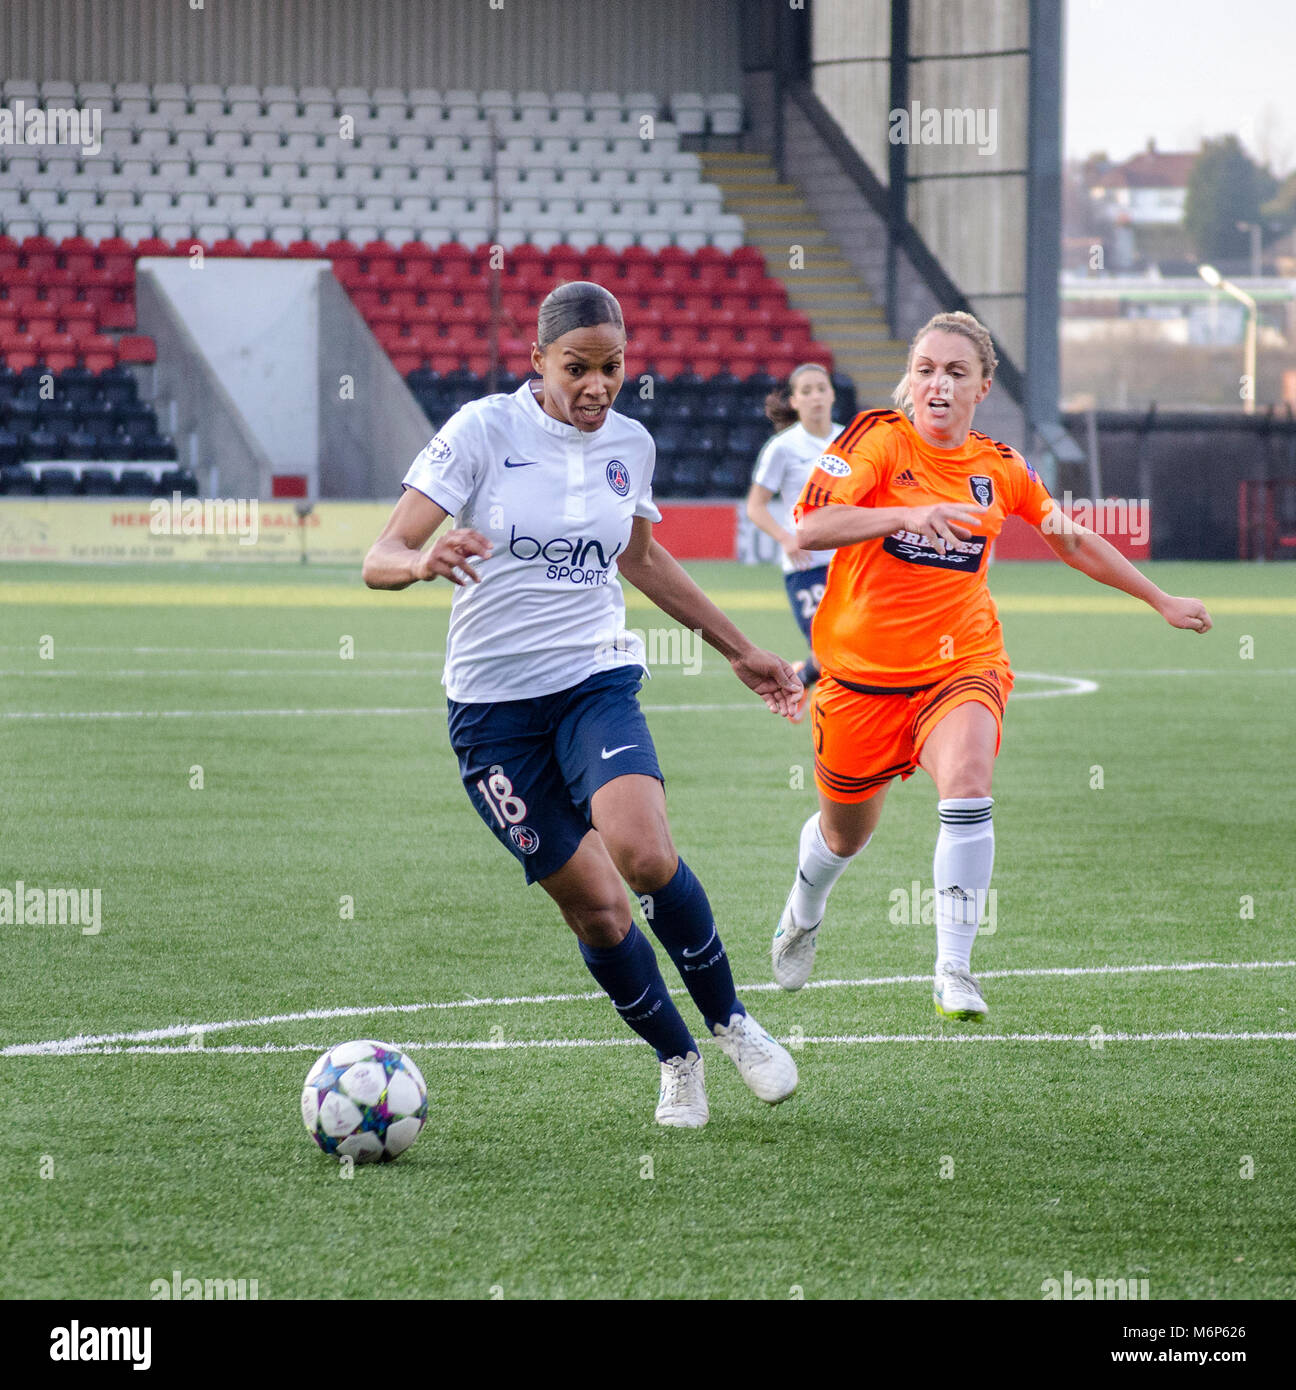 AIRDRIE, SCOTLAND - MARCH 22nd 2015: PSG's Marie-Laure Delie running towards the Glasgow city goals with a Glasgow - Stock Image